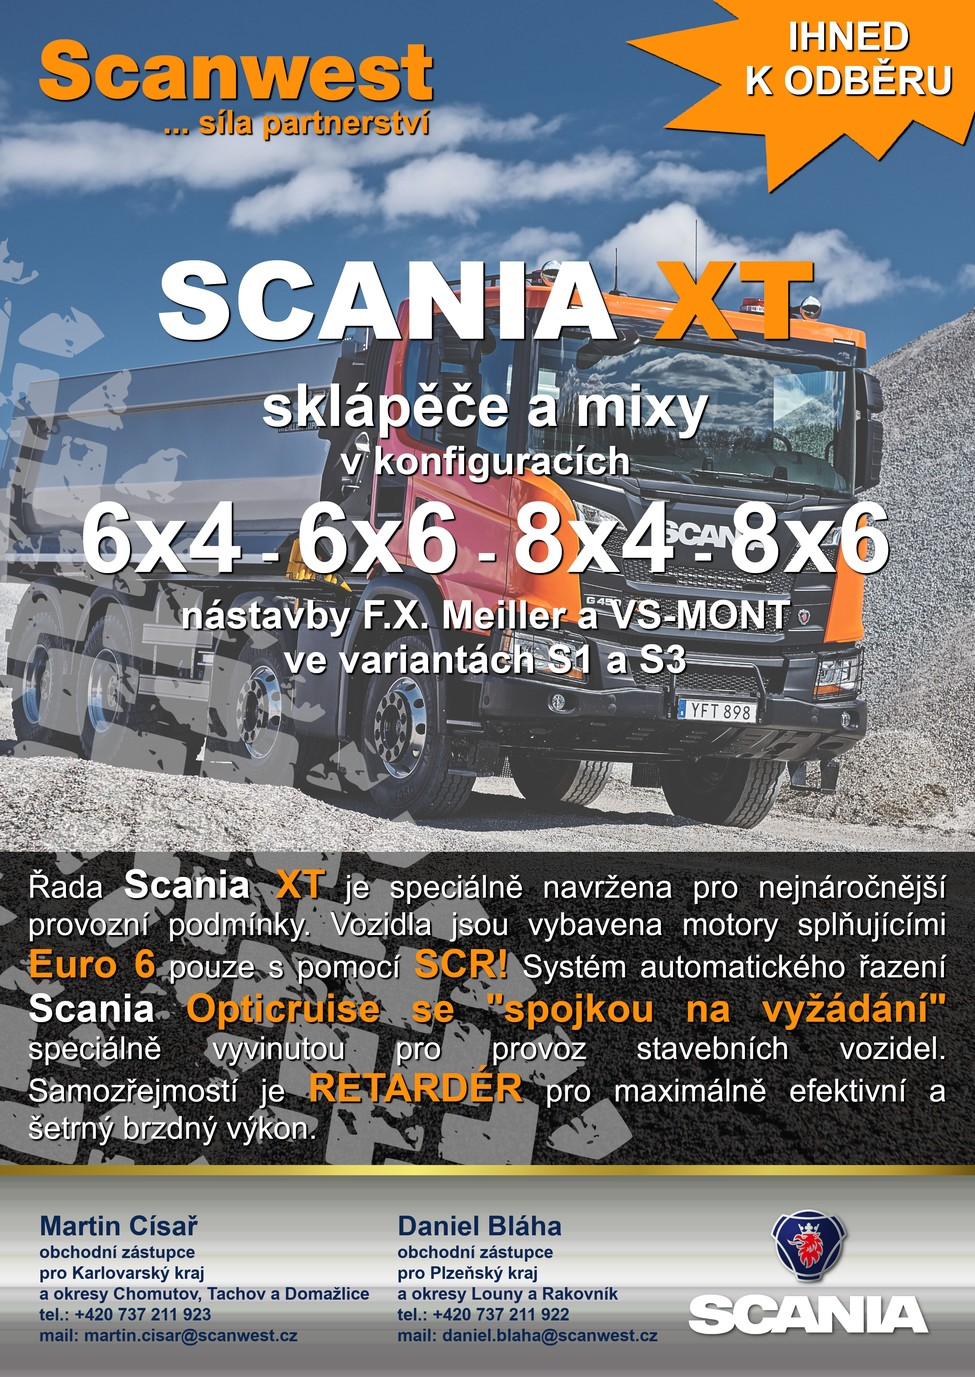 ScaniaXT_kampan.jpg